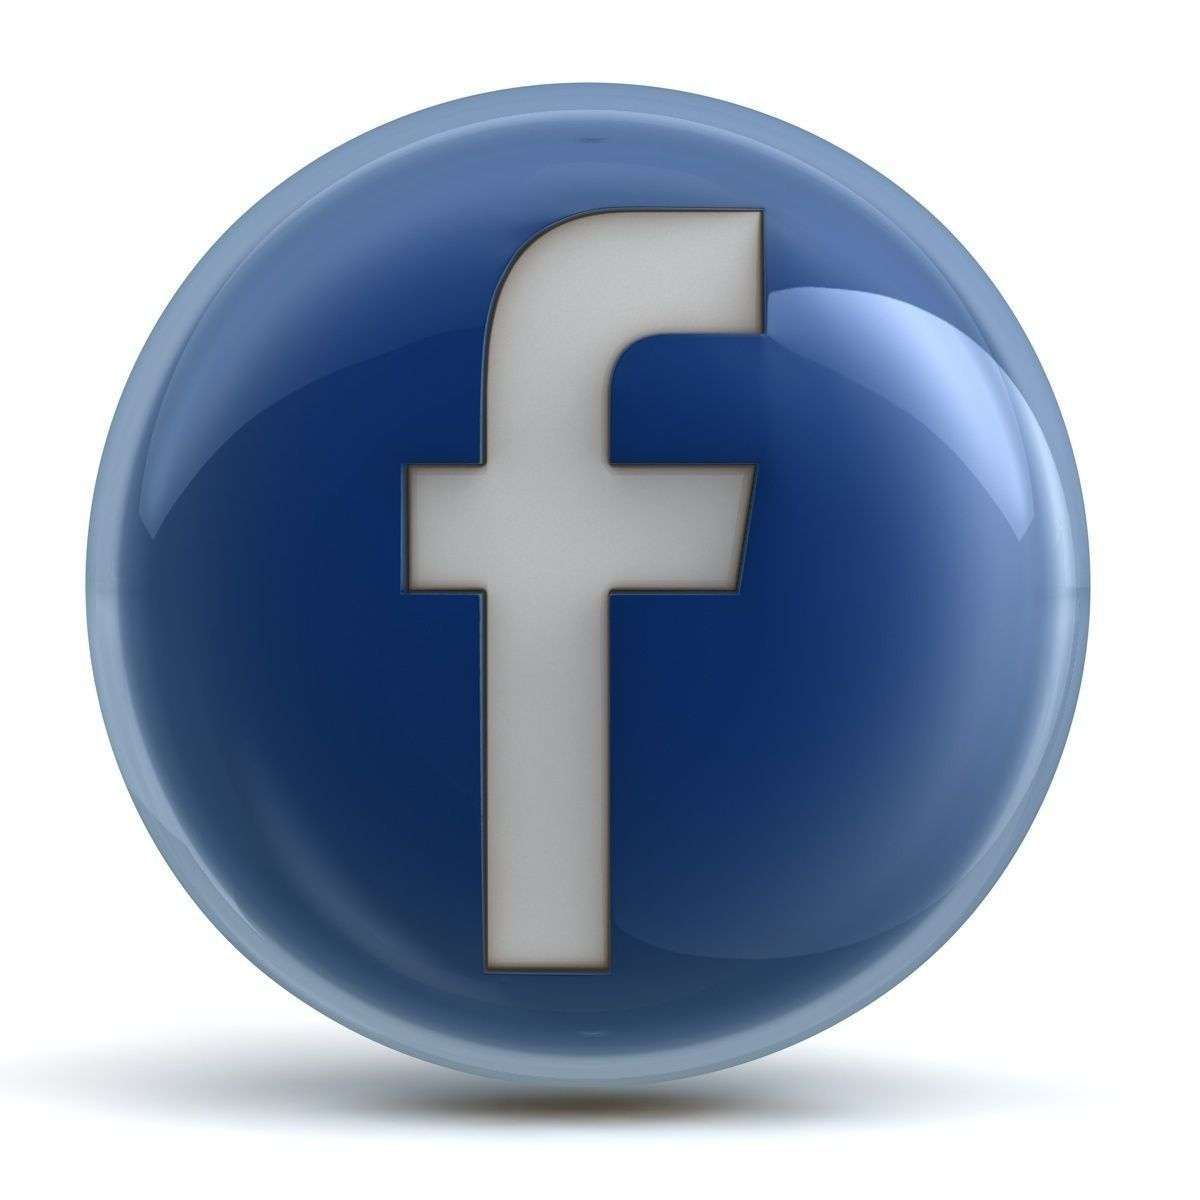 facebook icon 3d model obj 3ds fbx c4d cgtradercom